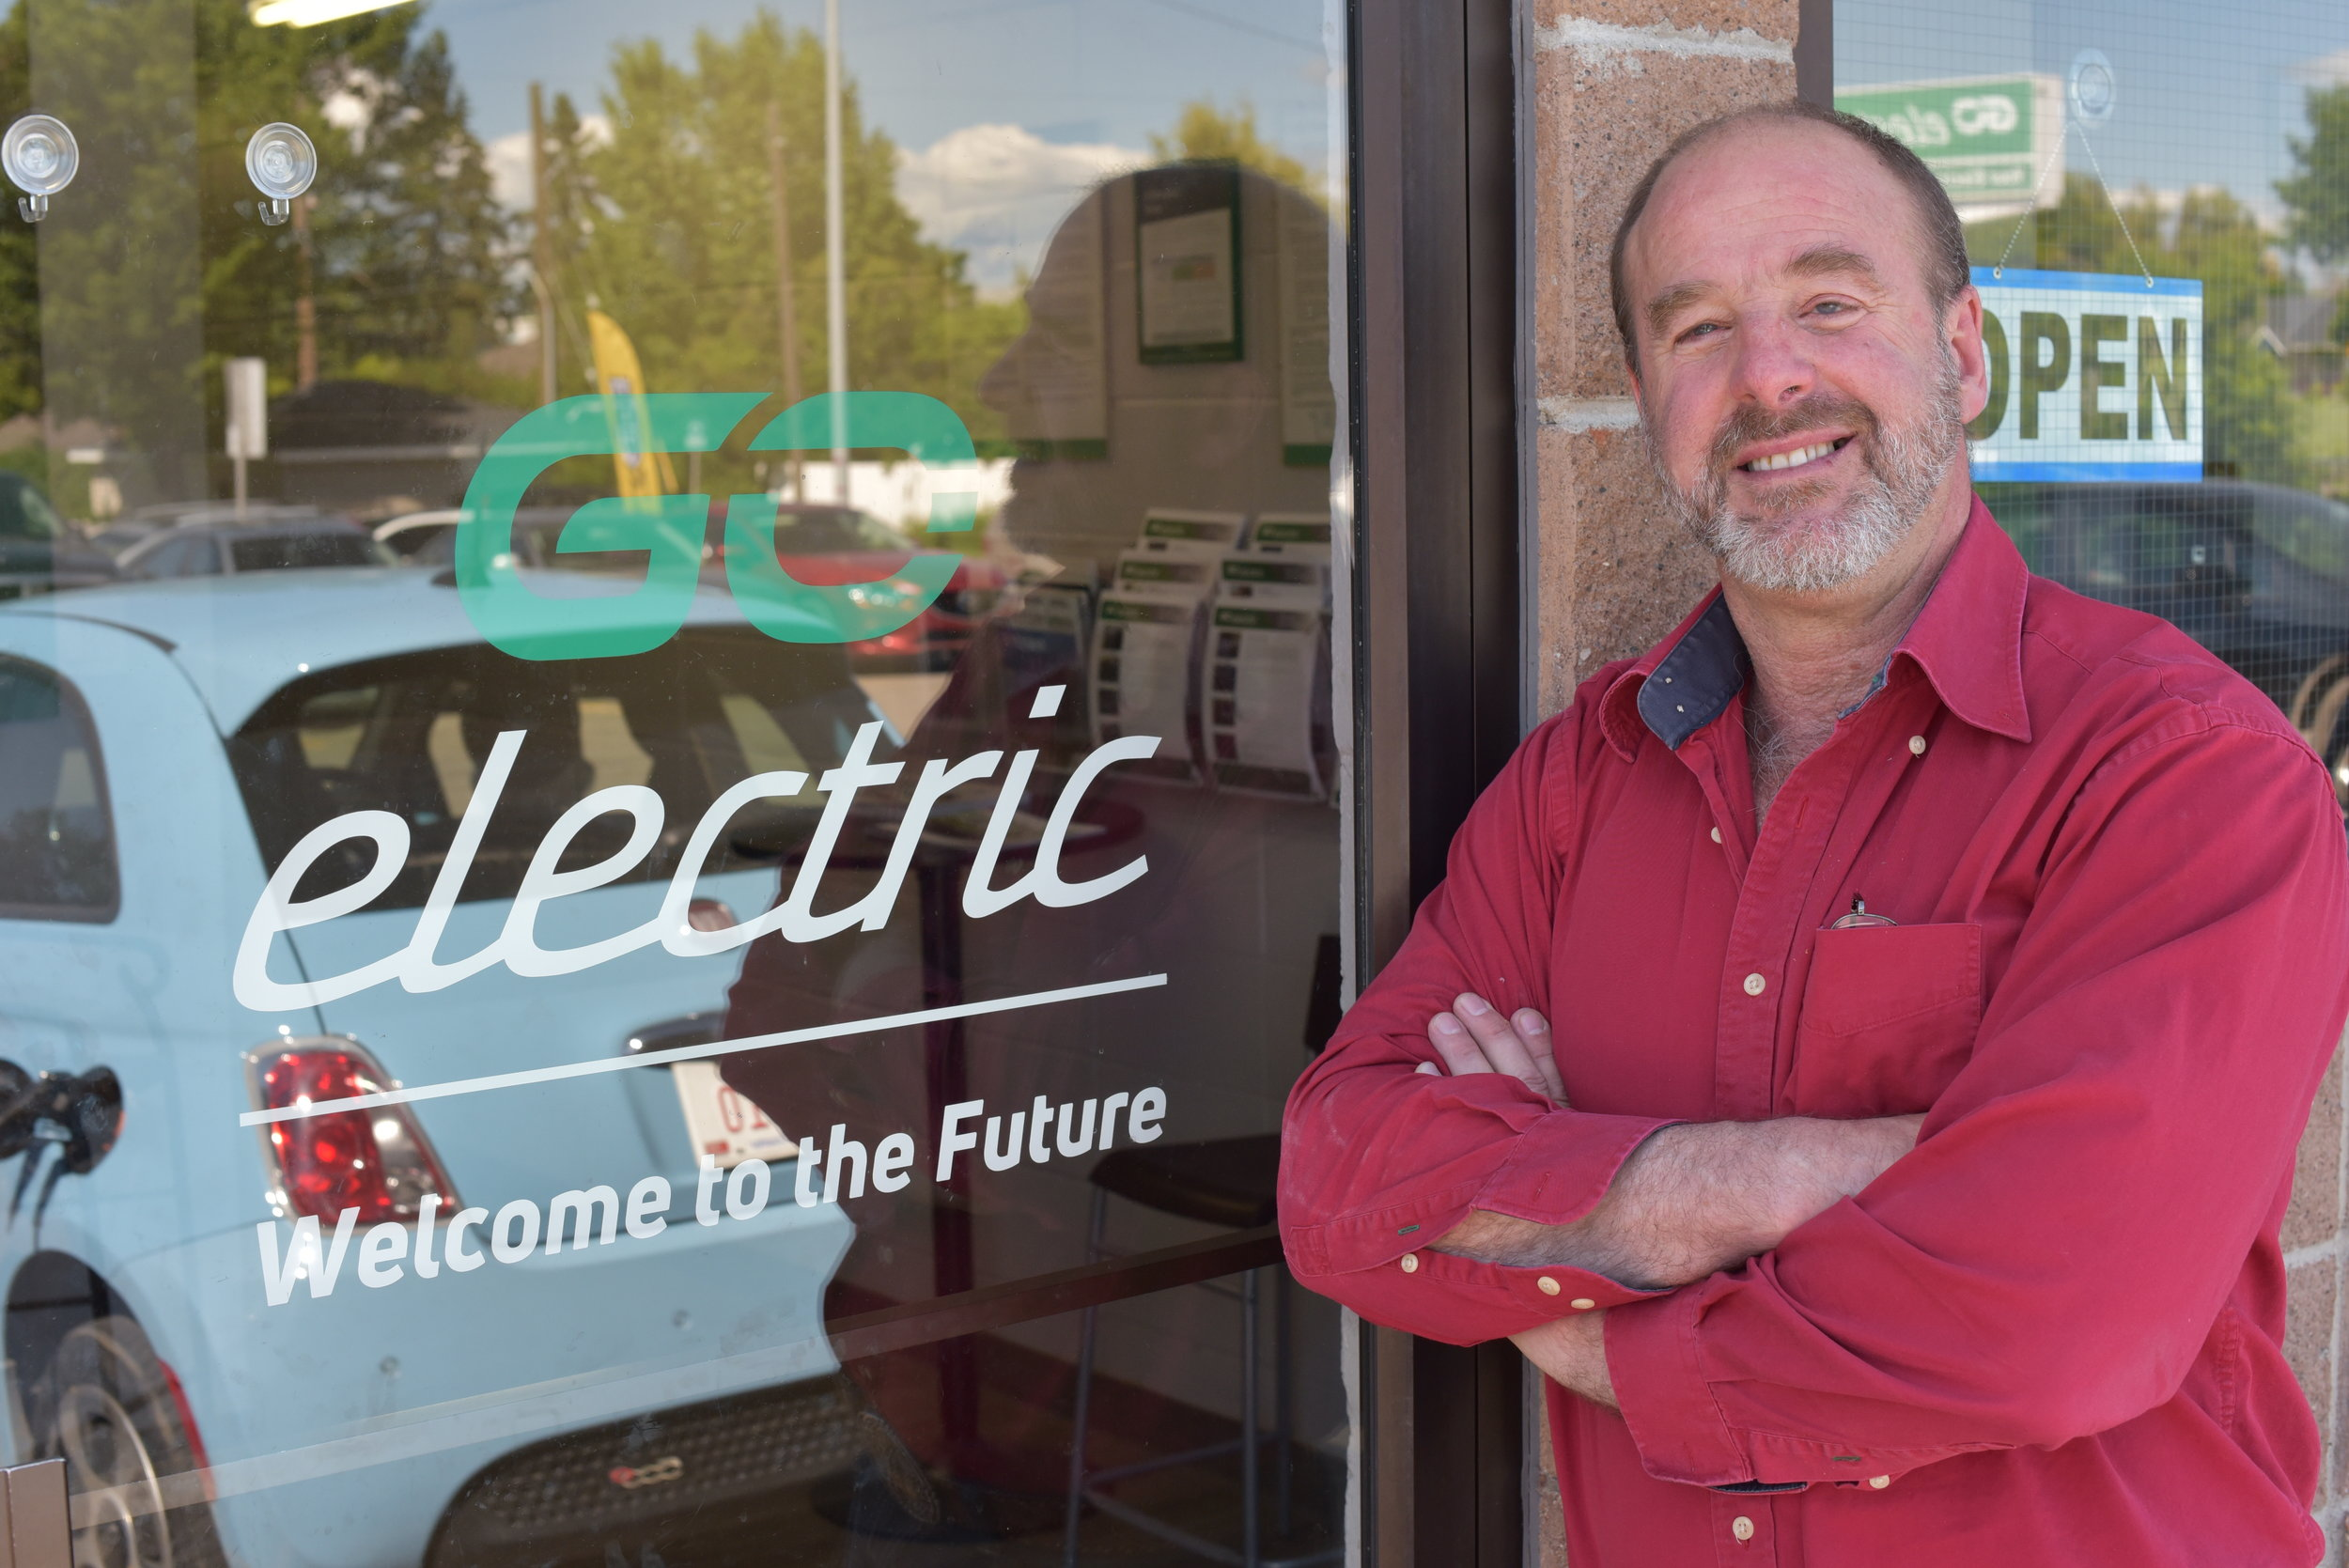 Jim Steil was trained as an electrical engineer before he decided to dive into the EV market. (Sarah Lawrynuik/CBC)